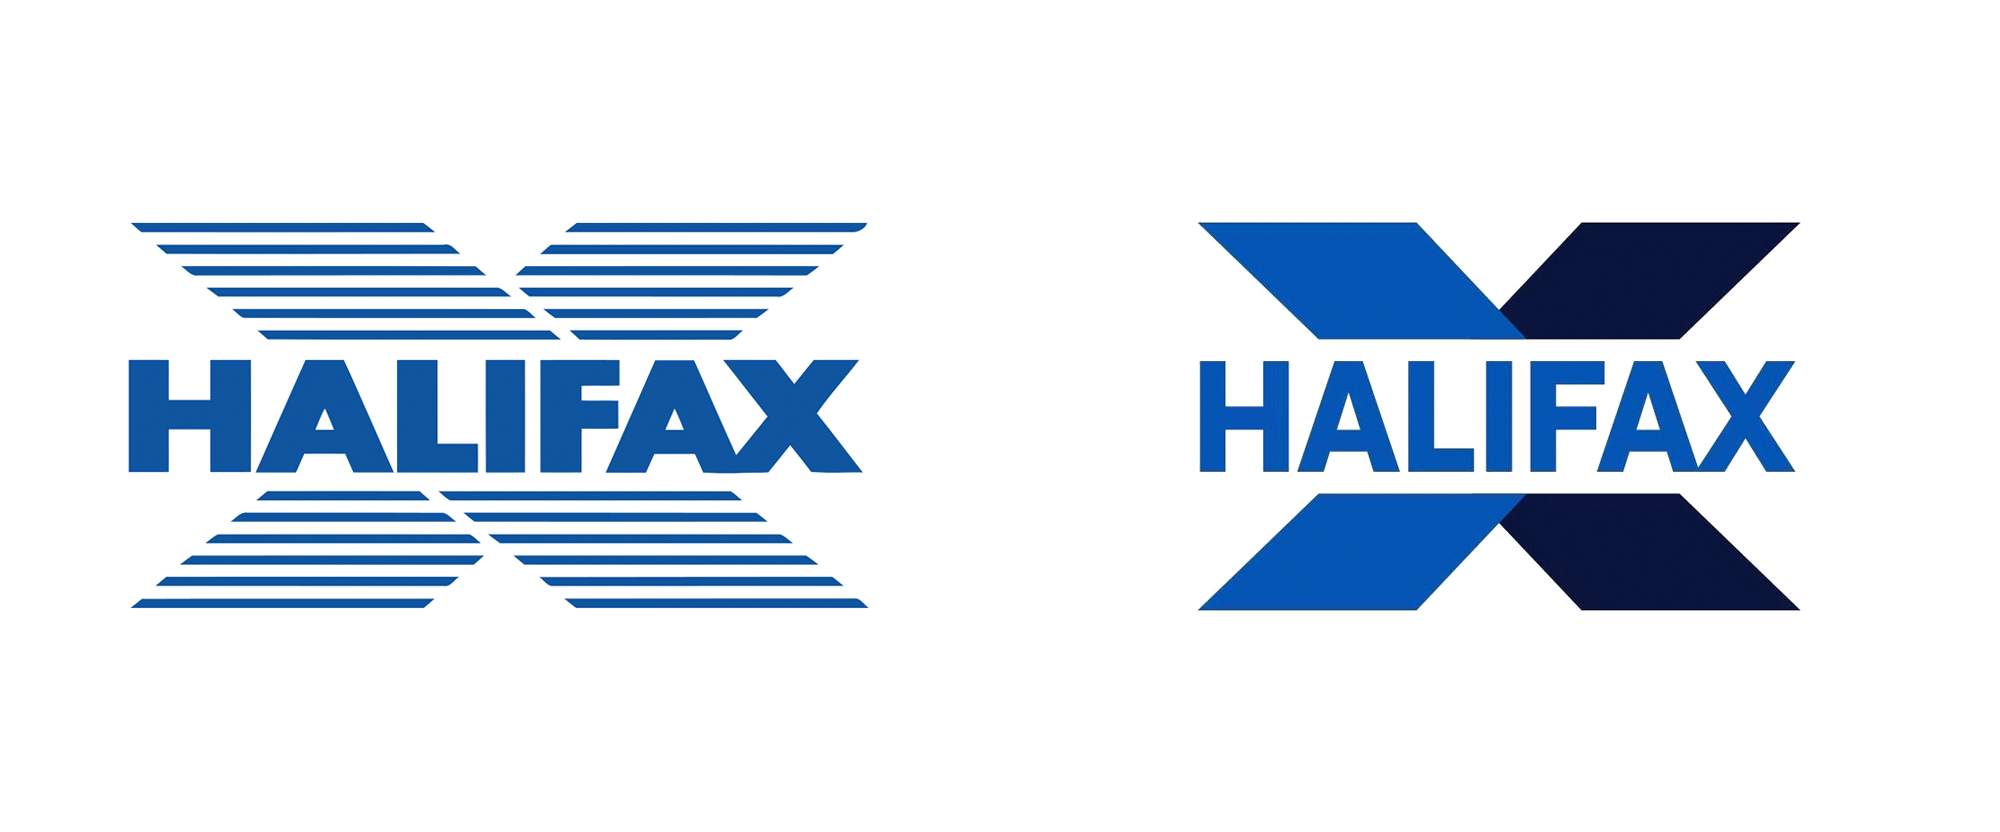 New Logo and Identity for Halifax by Rufus Leonard